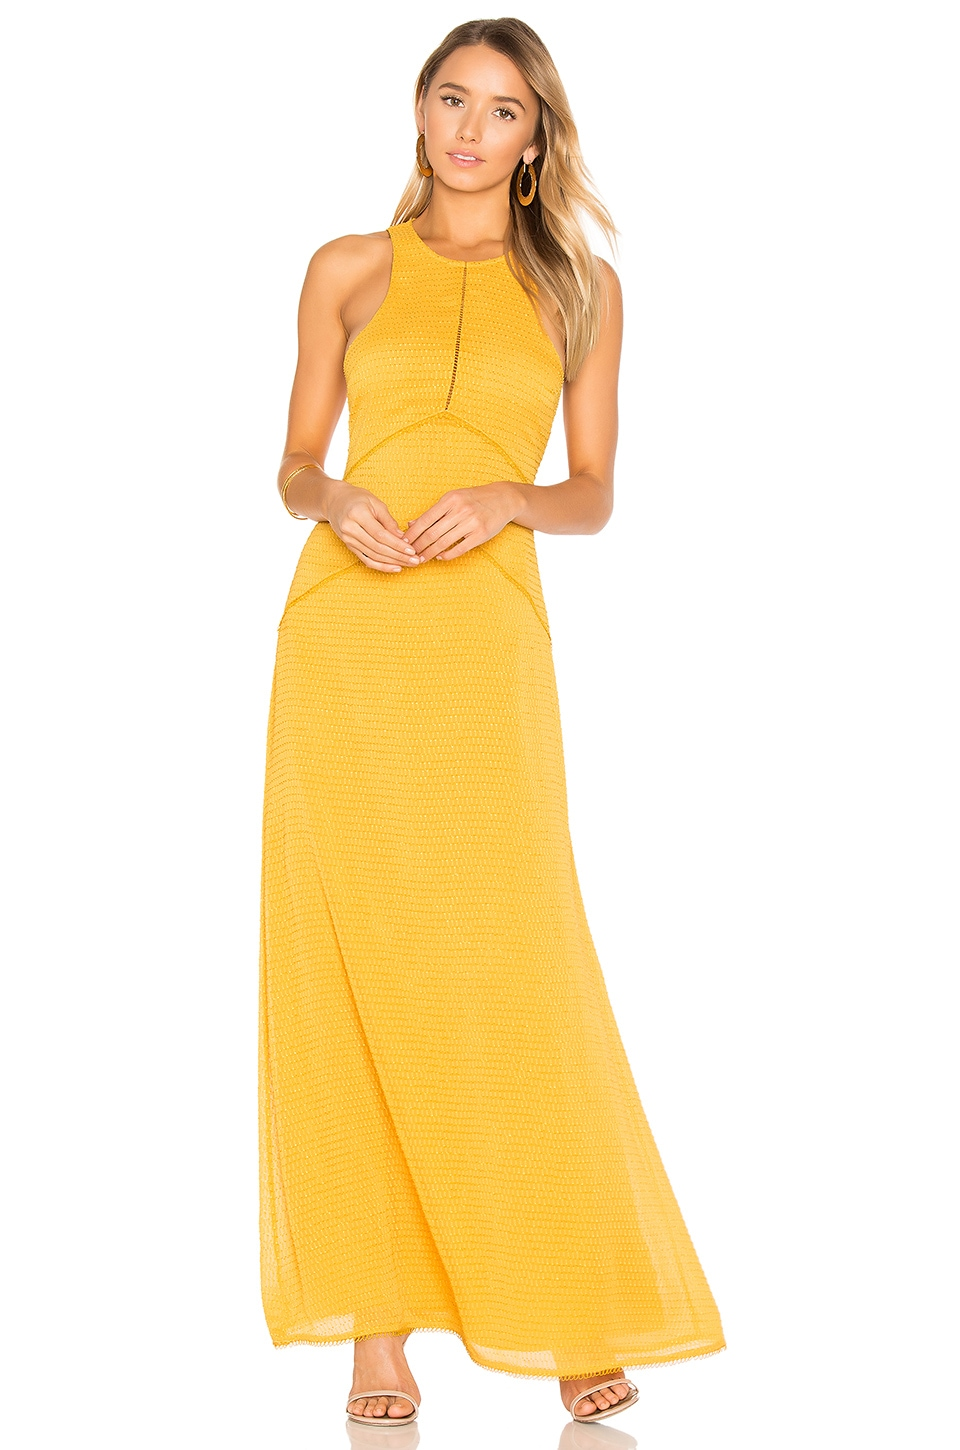 House of Harlow 1960 x REVOLVE Allegra Maxi Dress in Mustard